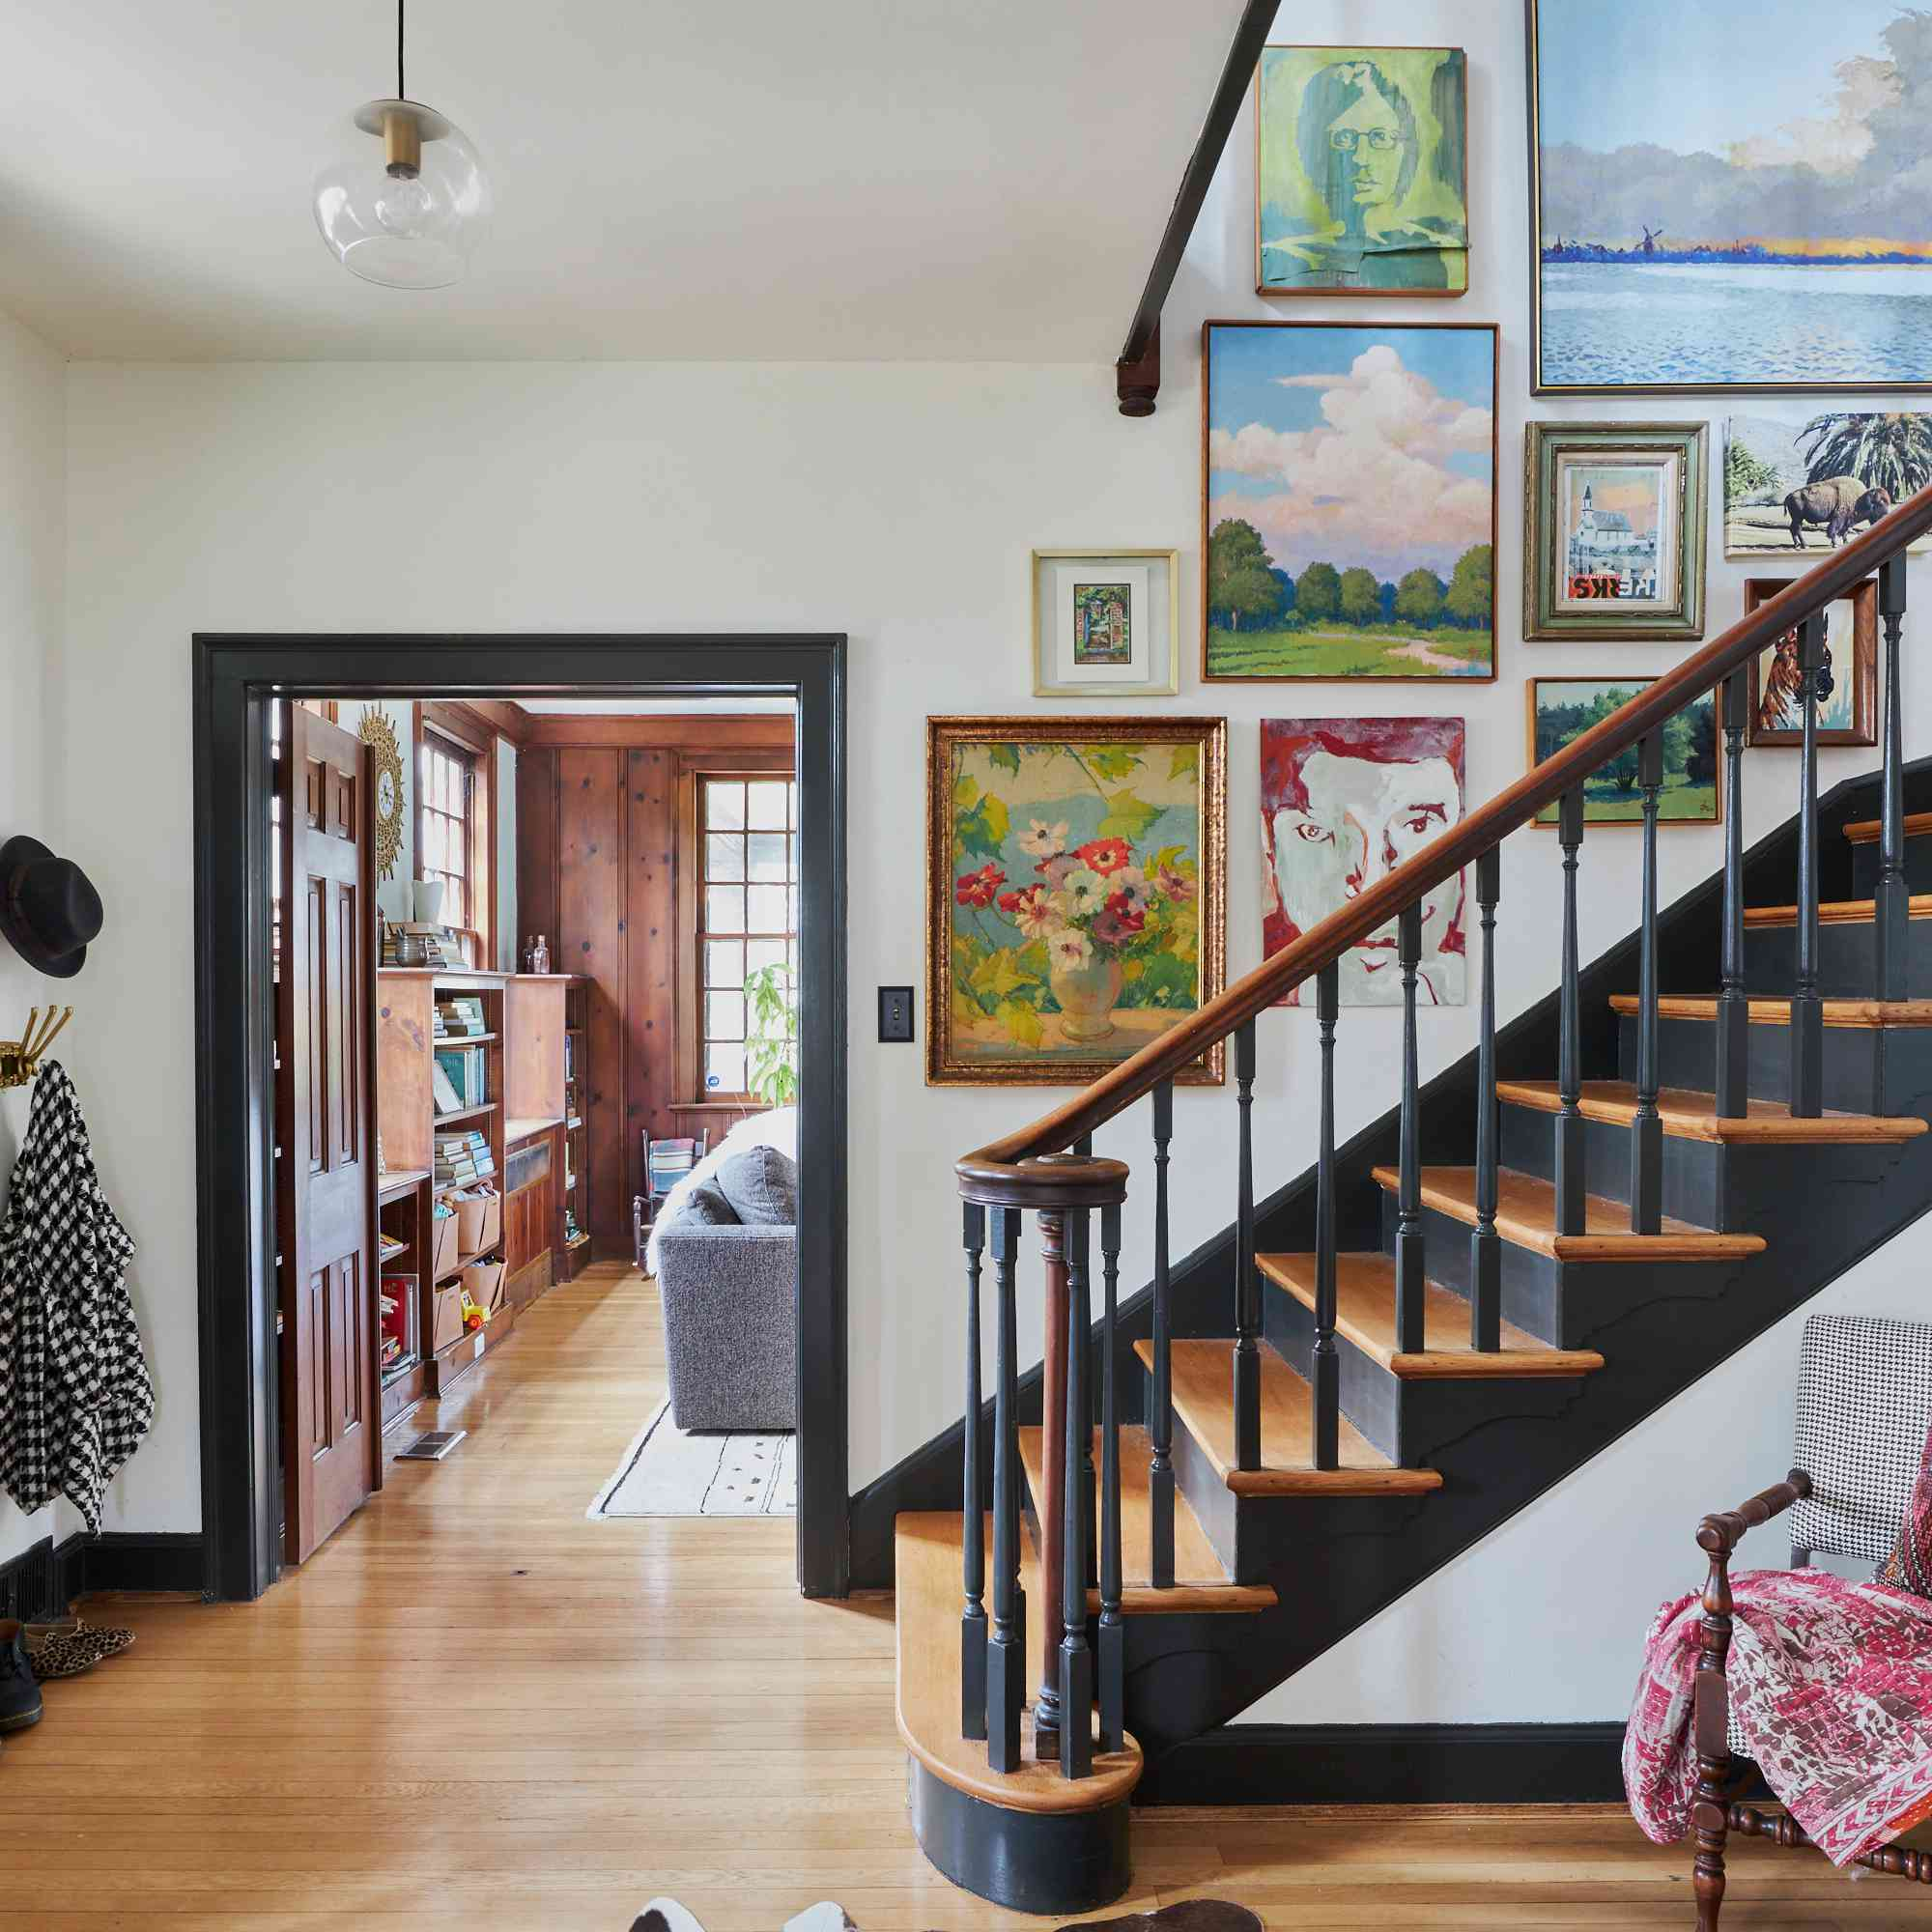 Eclectic gallery wall ascending staircase.